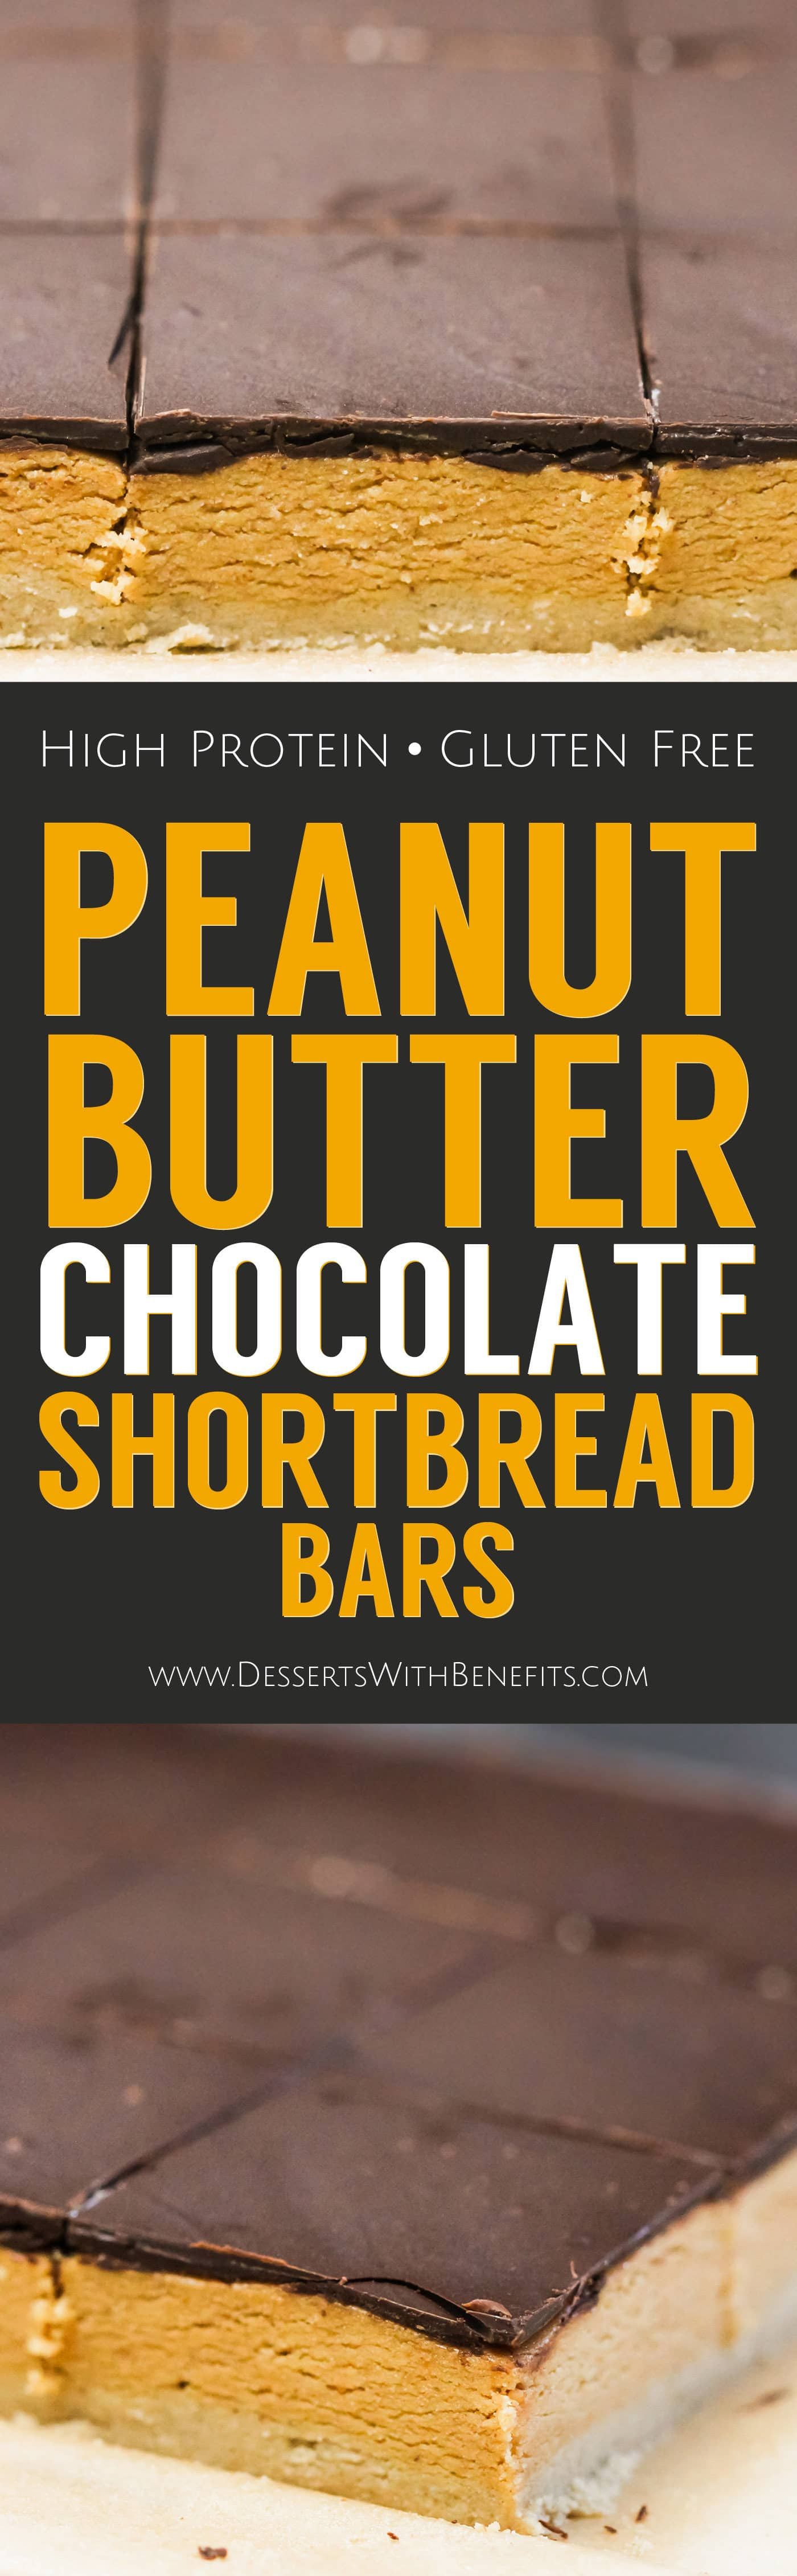 These no bake Healthy Peanut Butter Dark Chocolate Shortbread Bars are uber rich and decadent, it's hard to believe they're gluten free, refined sugar free, high protein, and super easy to make! Healthy Dessert Recipes at the Desserts With Benefits Blog (www.DessertsWithBenefits.com)